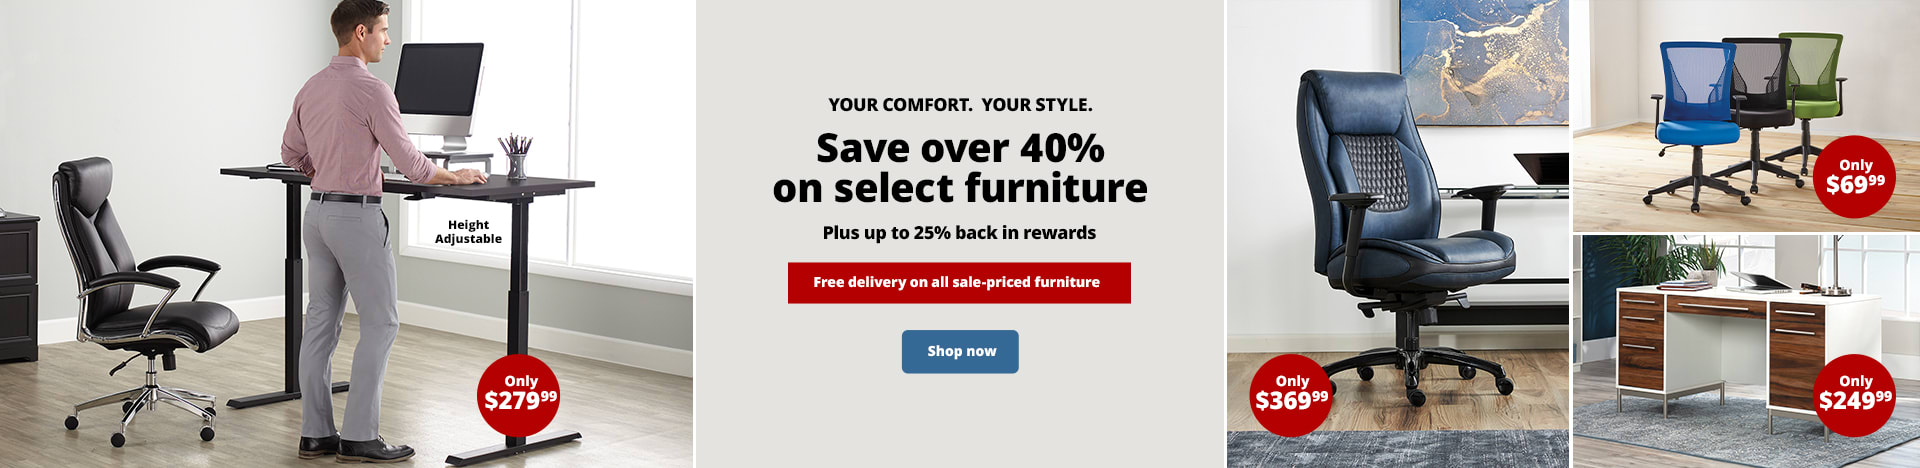 Save over 40% on select furniture | plus up to 25% back in rewards